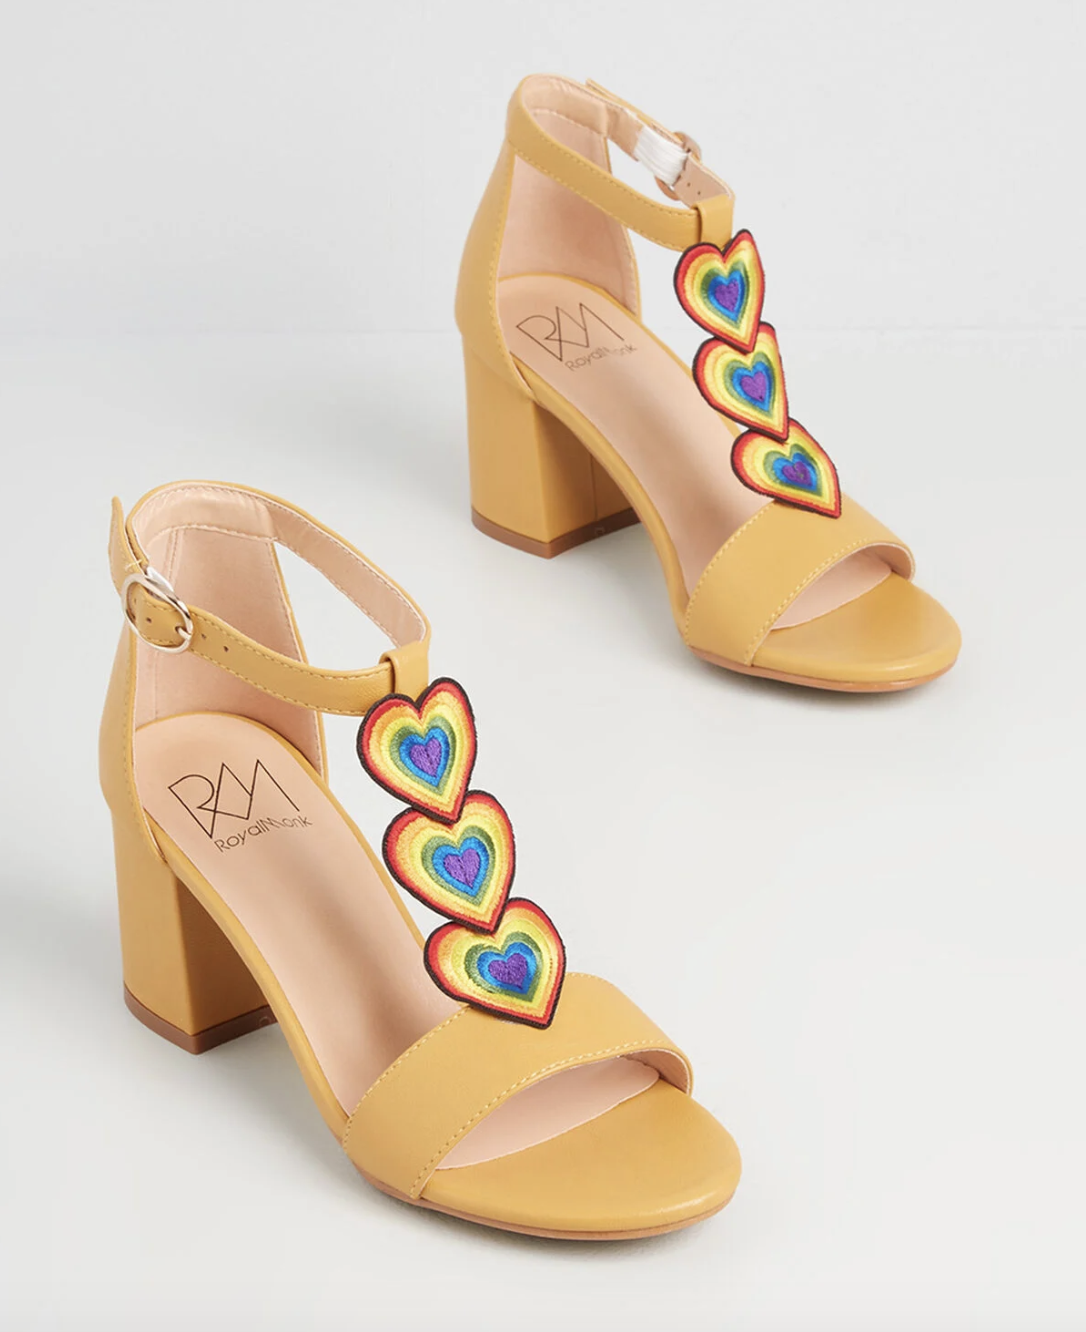 yellow heeled t-strap sandals with rainbow hearts on the straps